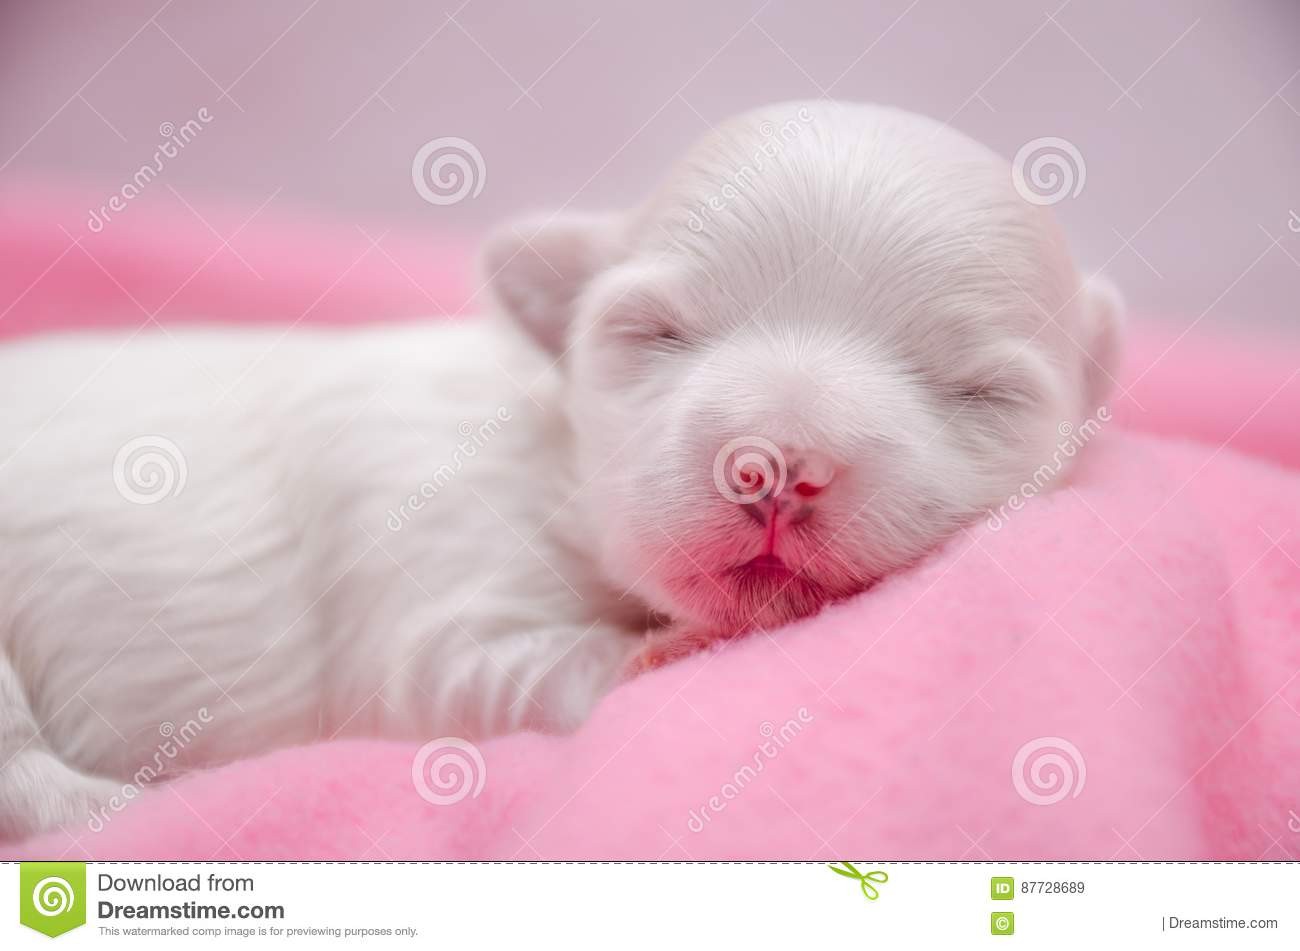 Little White Maltese Puppies Sleeping Stock Image Image Of Puppies Gently 87728689